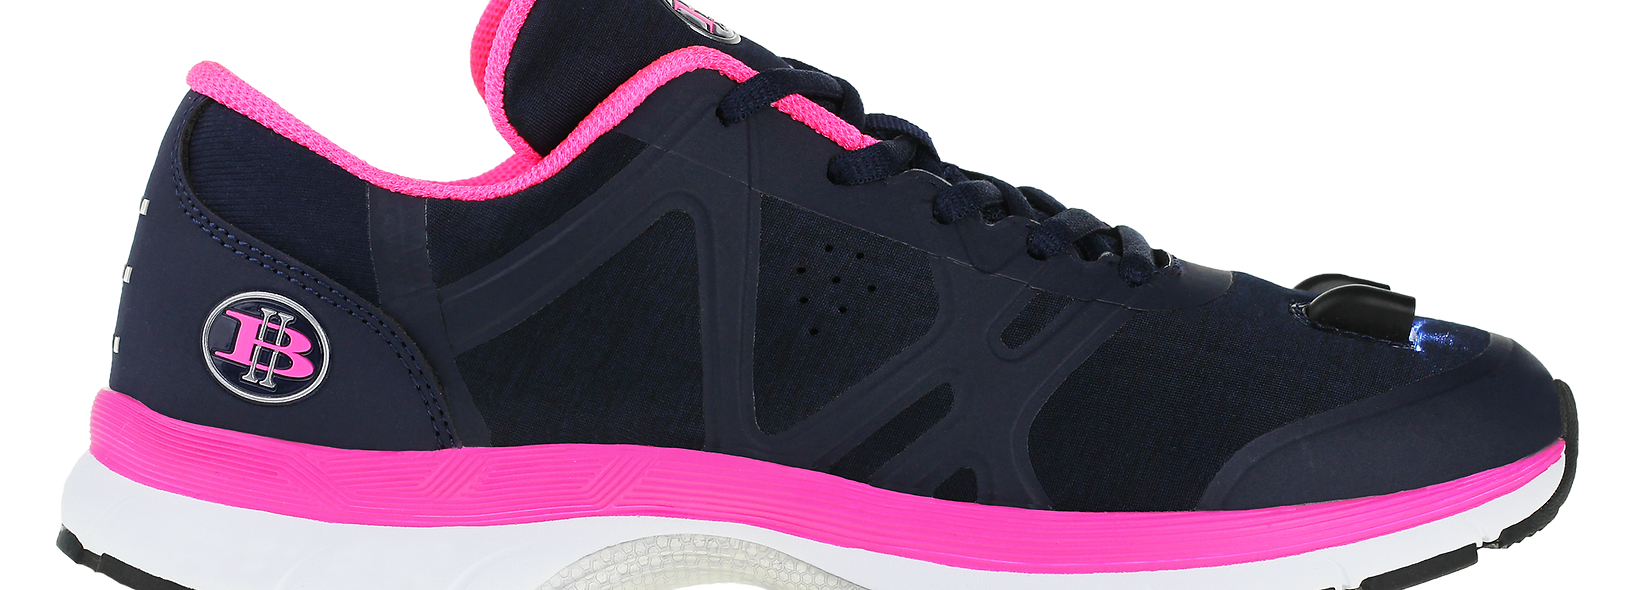 Women's LED Walking Shoes -Side View 1 (Blue/Pink)